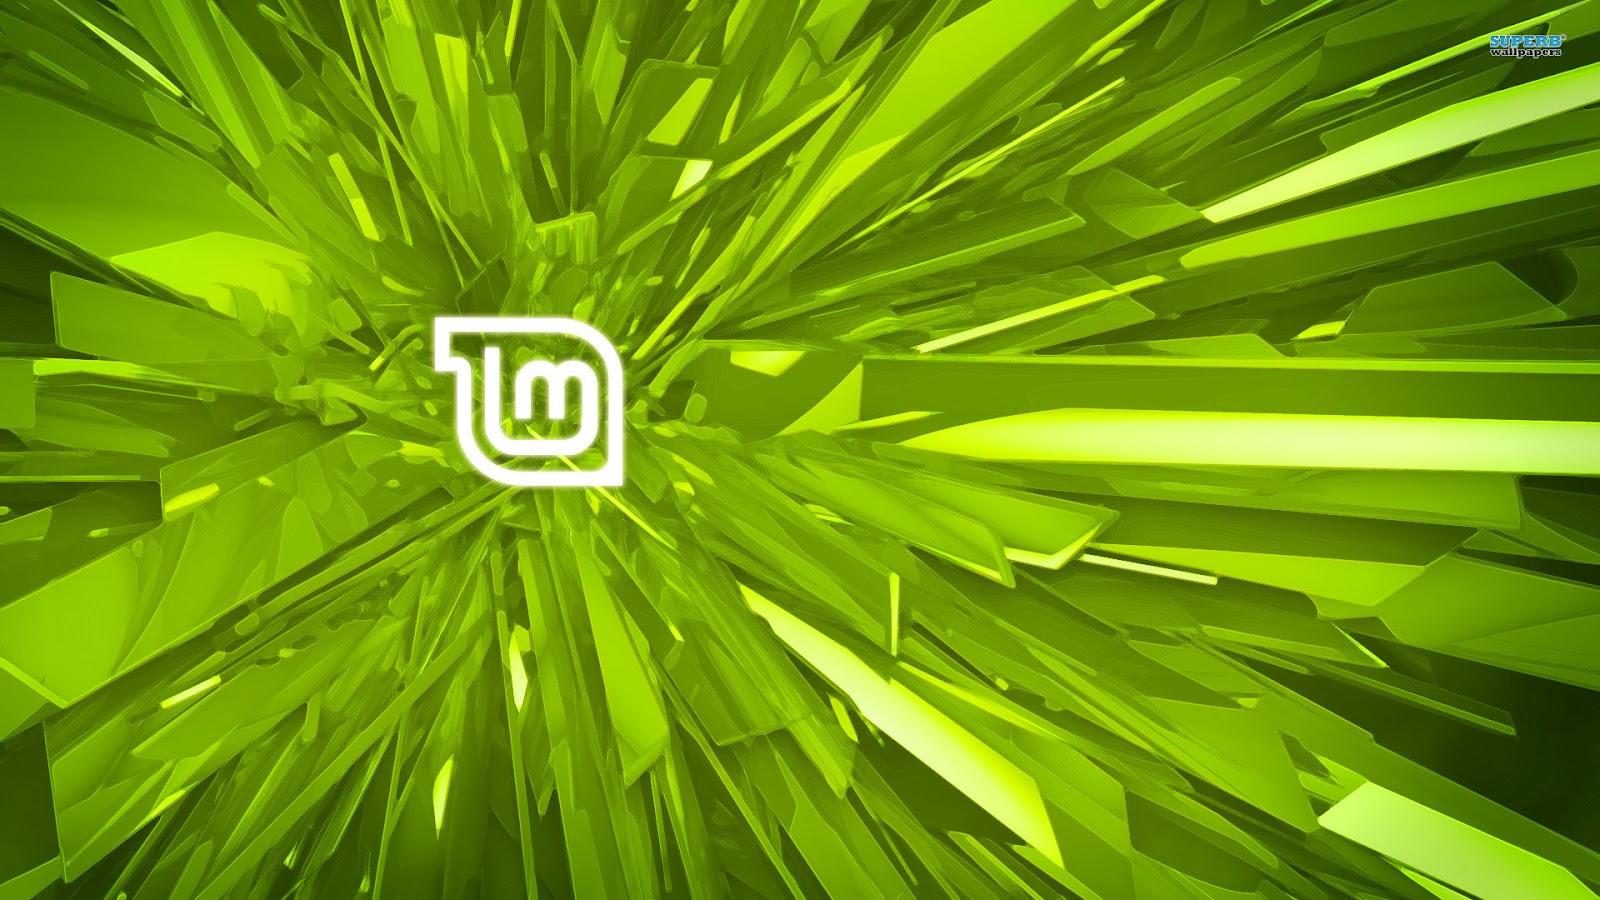 Your Wallpaper Linux Mint